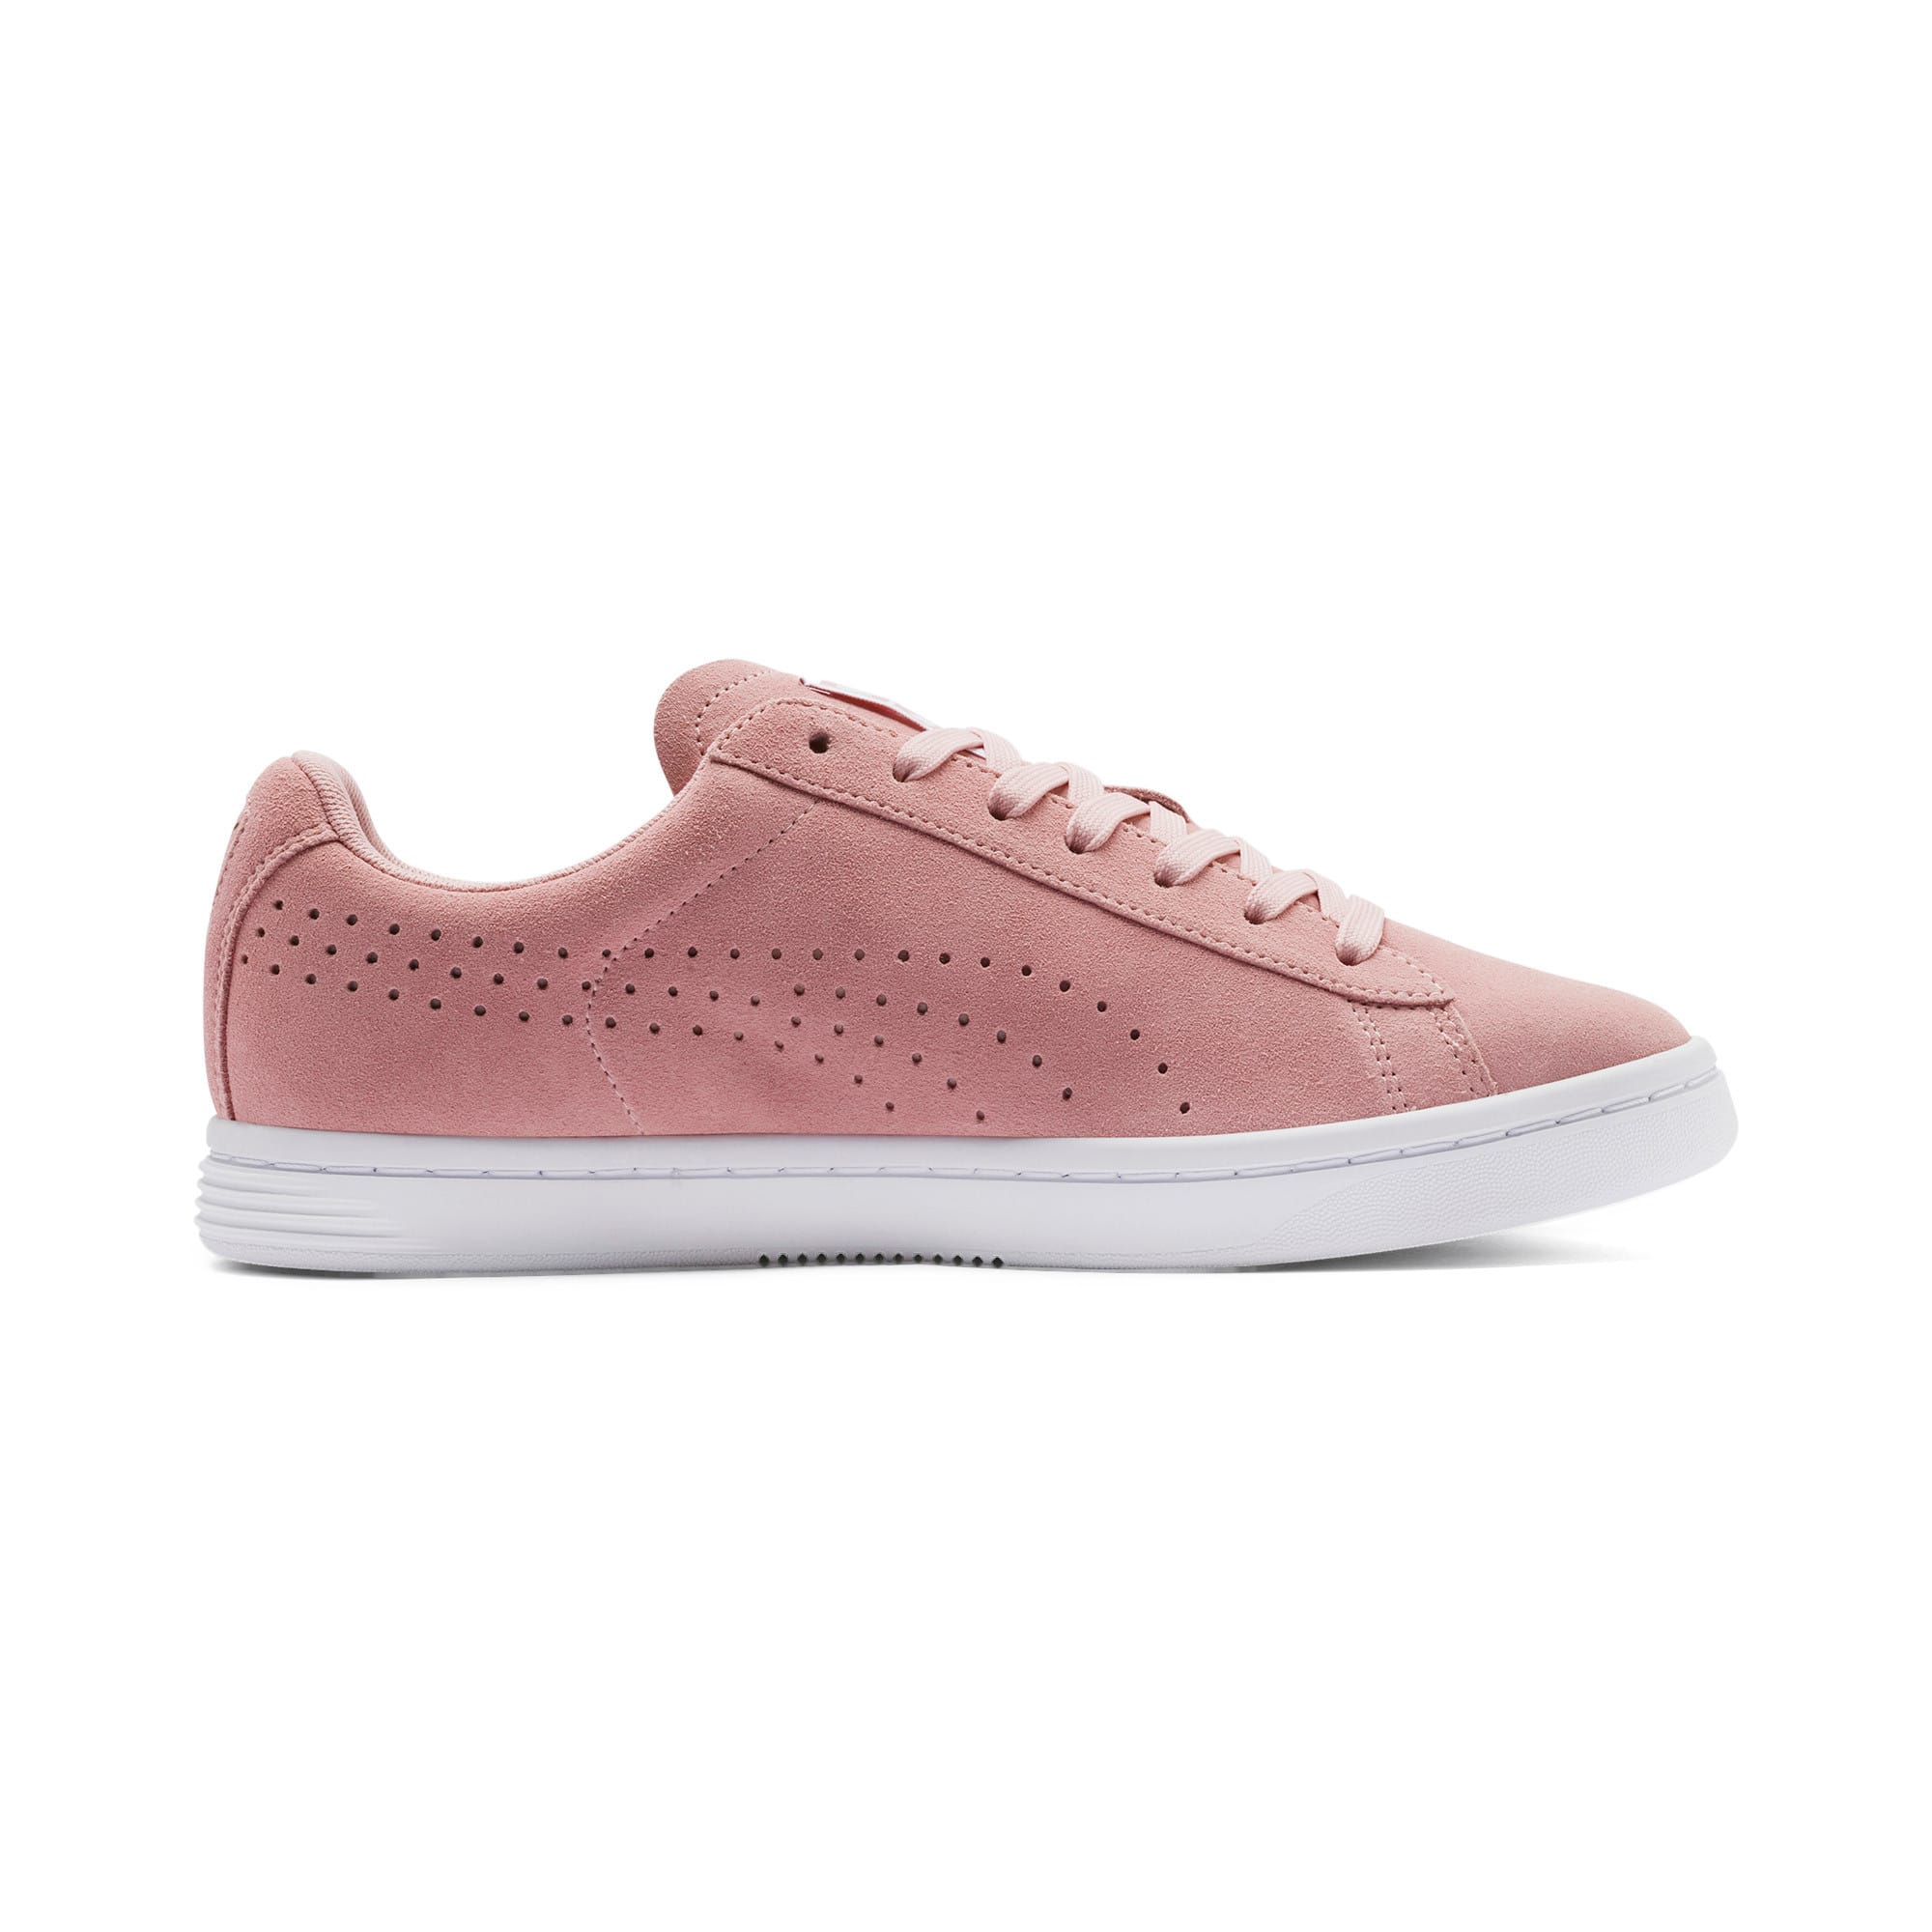 Thumbnail 6 of Court Star Suede Sneakers, Bridal Rose-Puma White, medium